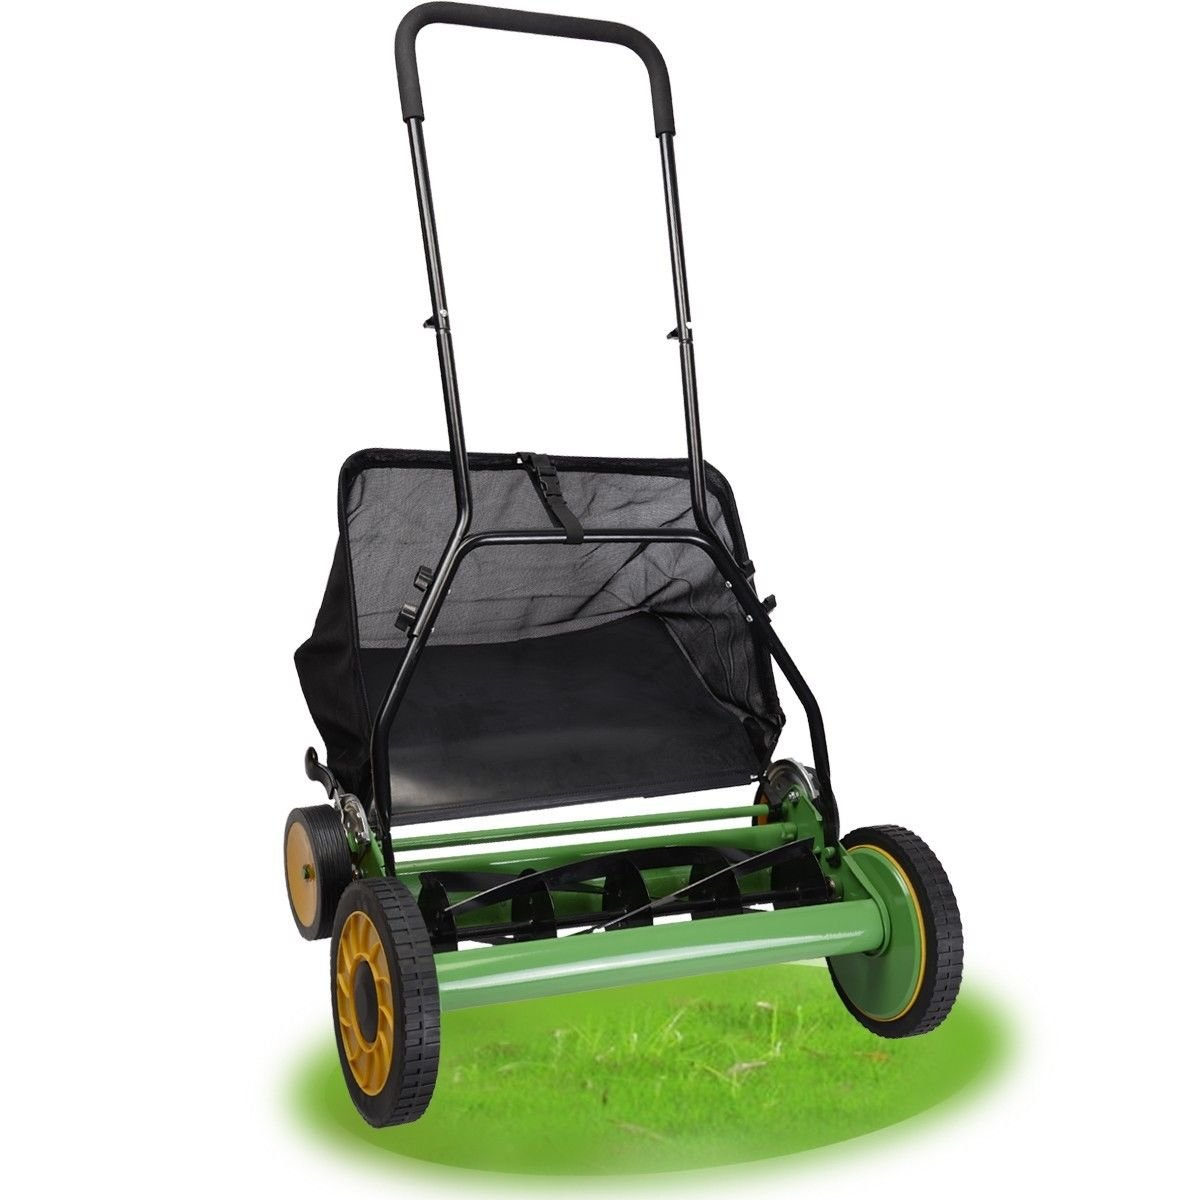 20'' Classic Hand Push Lawn Mower 10'' And 6'' Dual Tracking Wheels And Rugged Rubber Tires